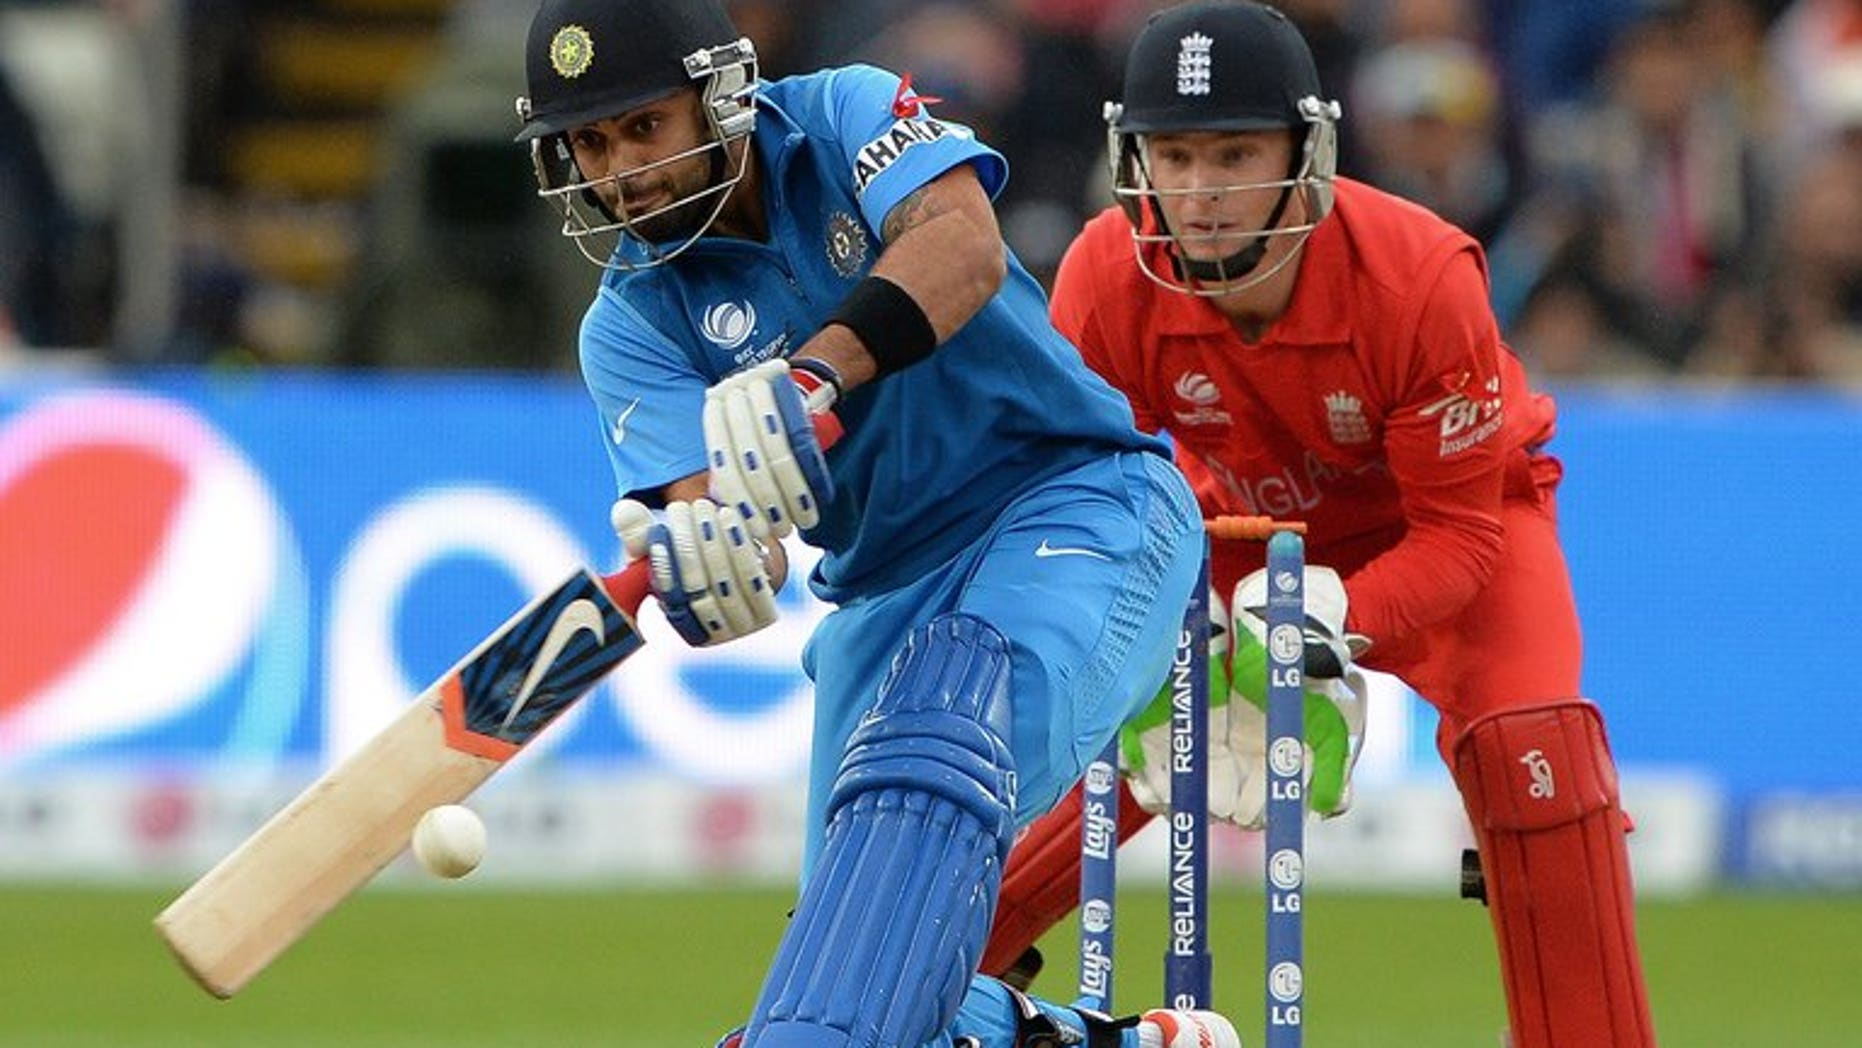 Virat Kohli hits a six for India against England in the Champions Trophy final at Edgbaston on June 23. India and Sri Lanka go in search of their first points of the Tri-Nation Series when they meet on Tuesday at Sabina Park as the preliminary phase of the competition reaches the halfway point.